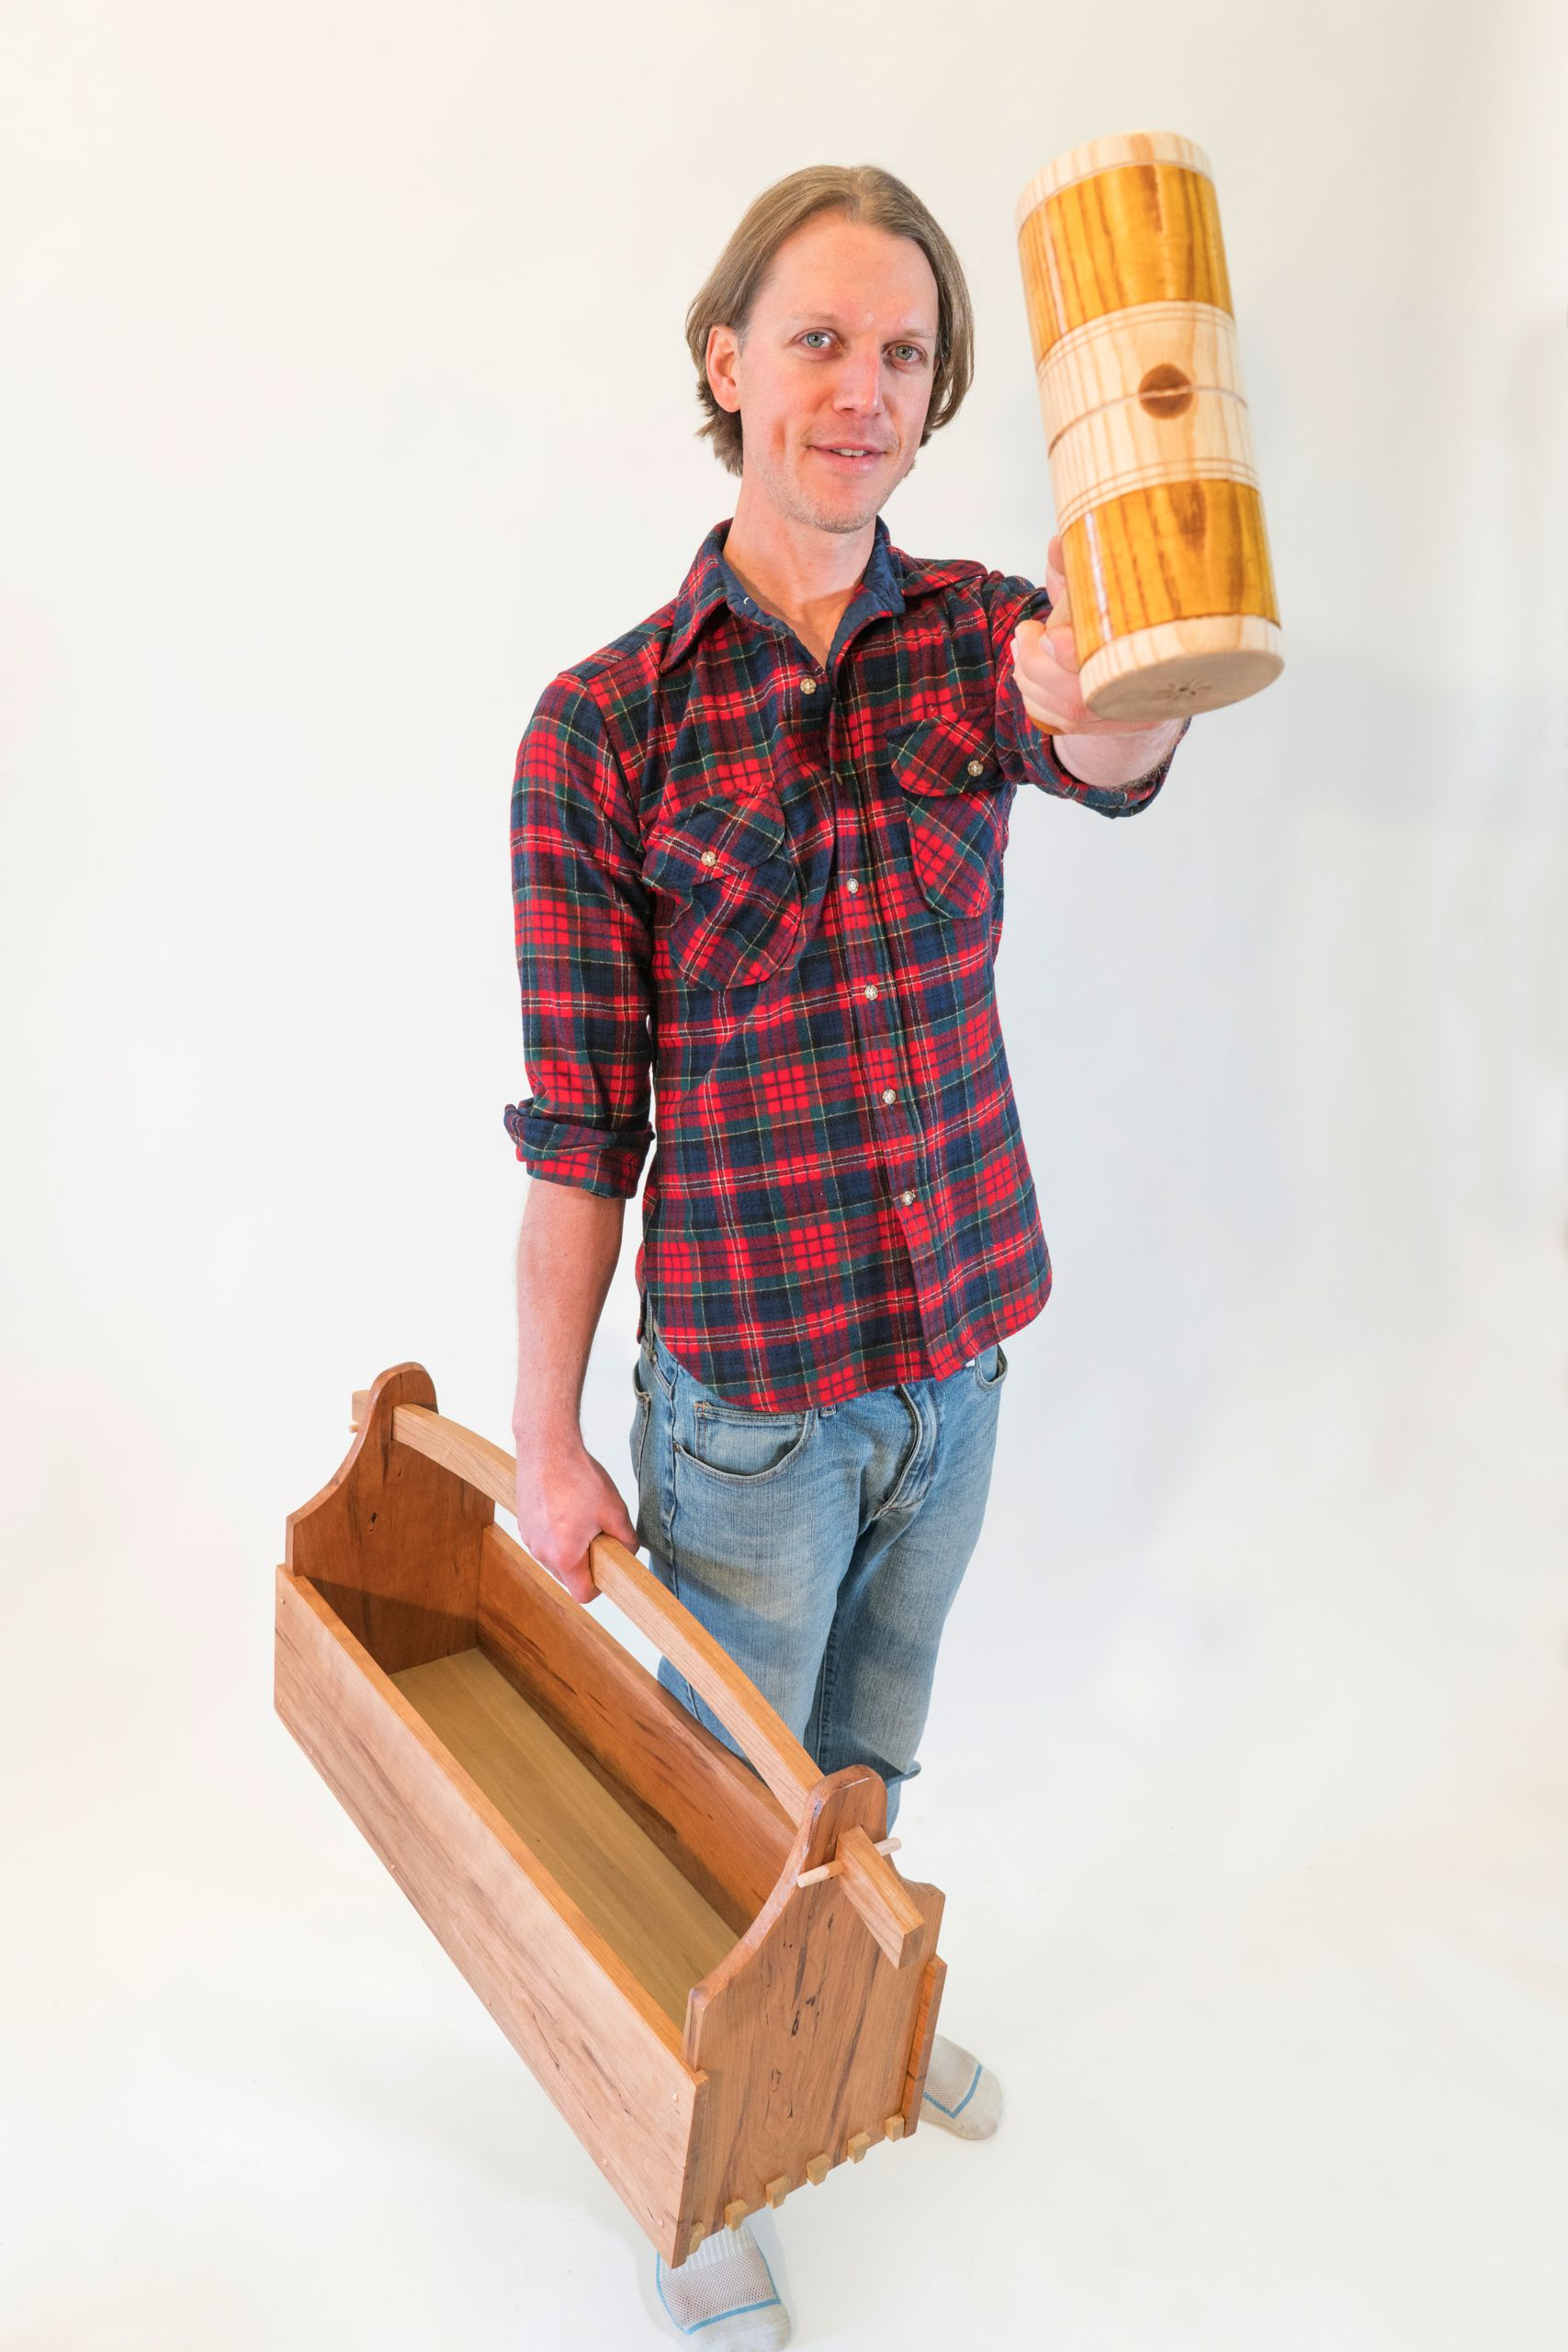 Tool tote in one hand and turned mallet in the other, Corey White